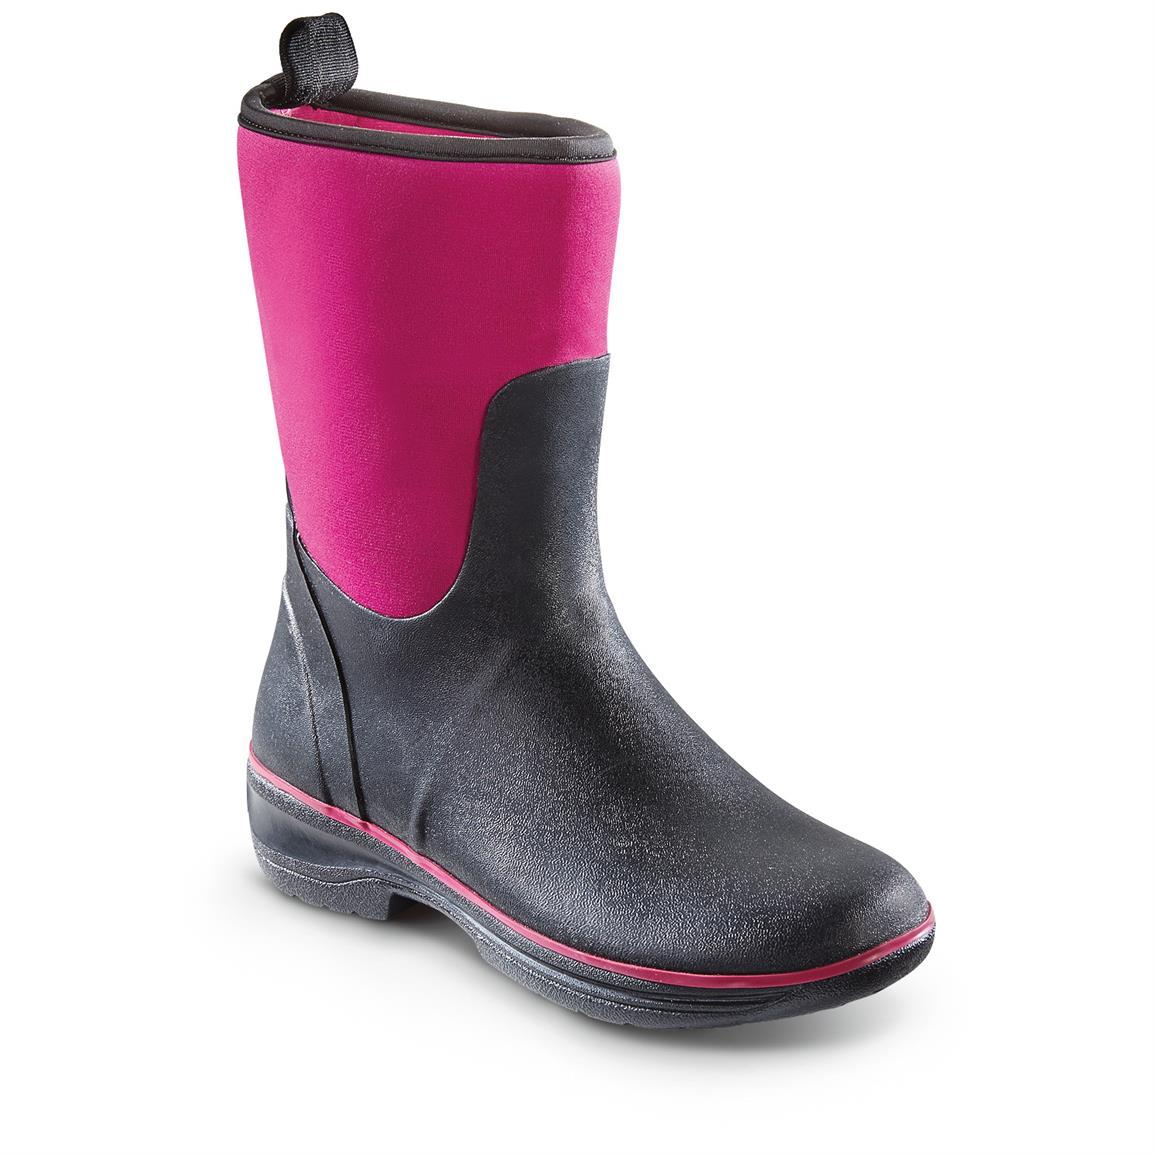 Western Chief Women's Neoprene Rubber Boots, Waterproof, Berry